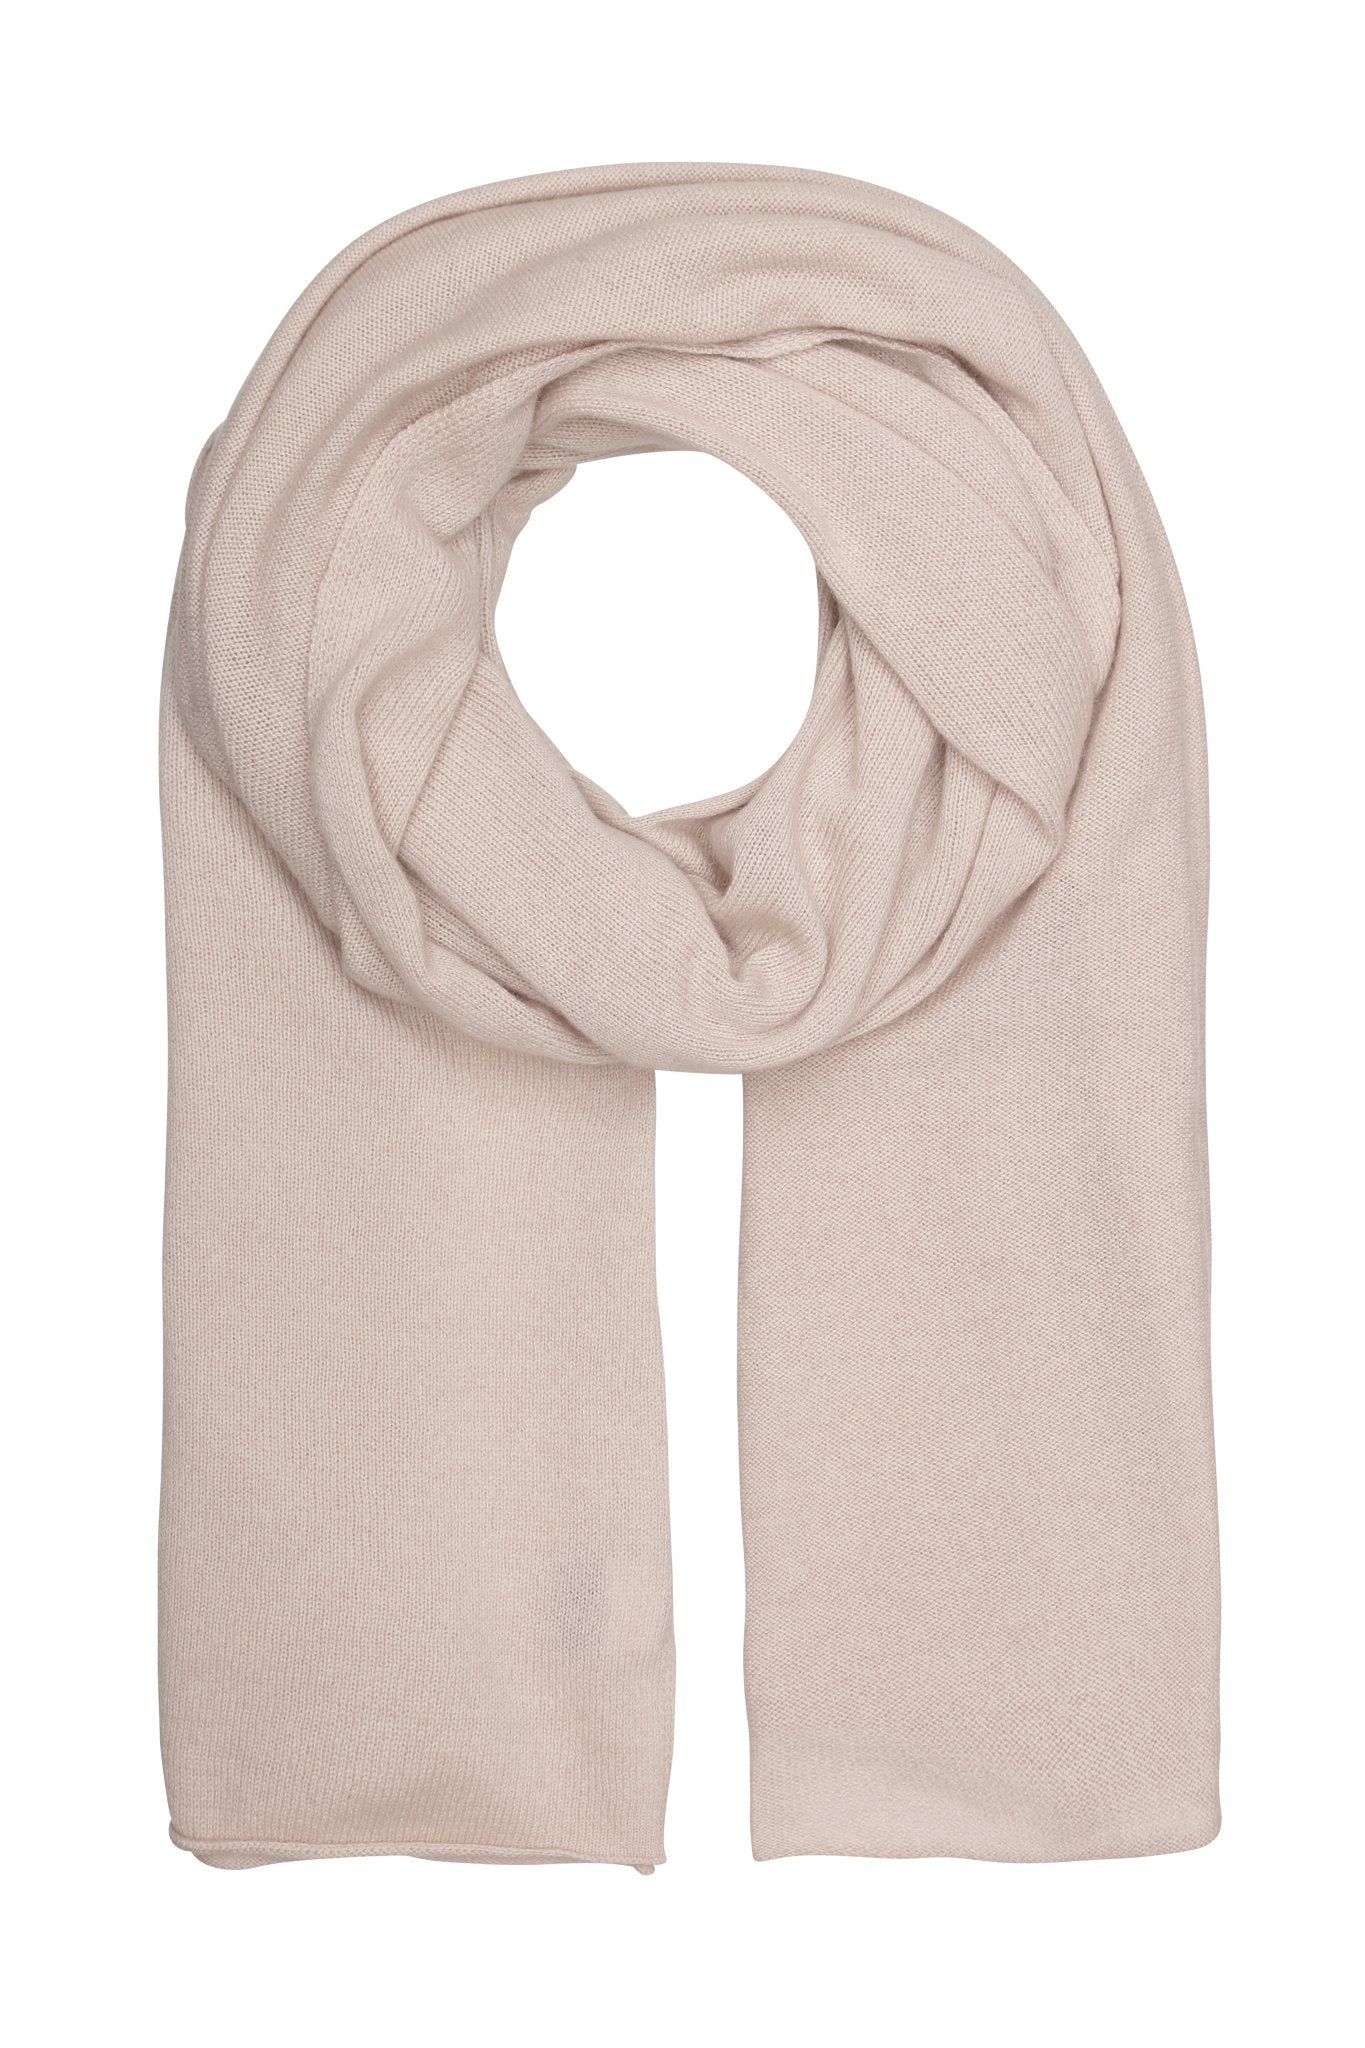 Luna - stor klassisk halsduk i cashmere - Light dusty rose